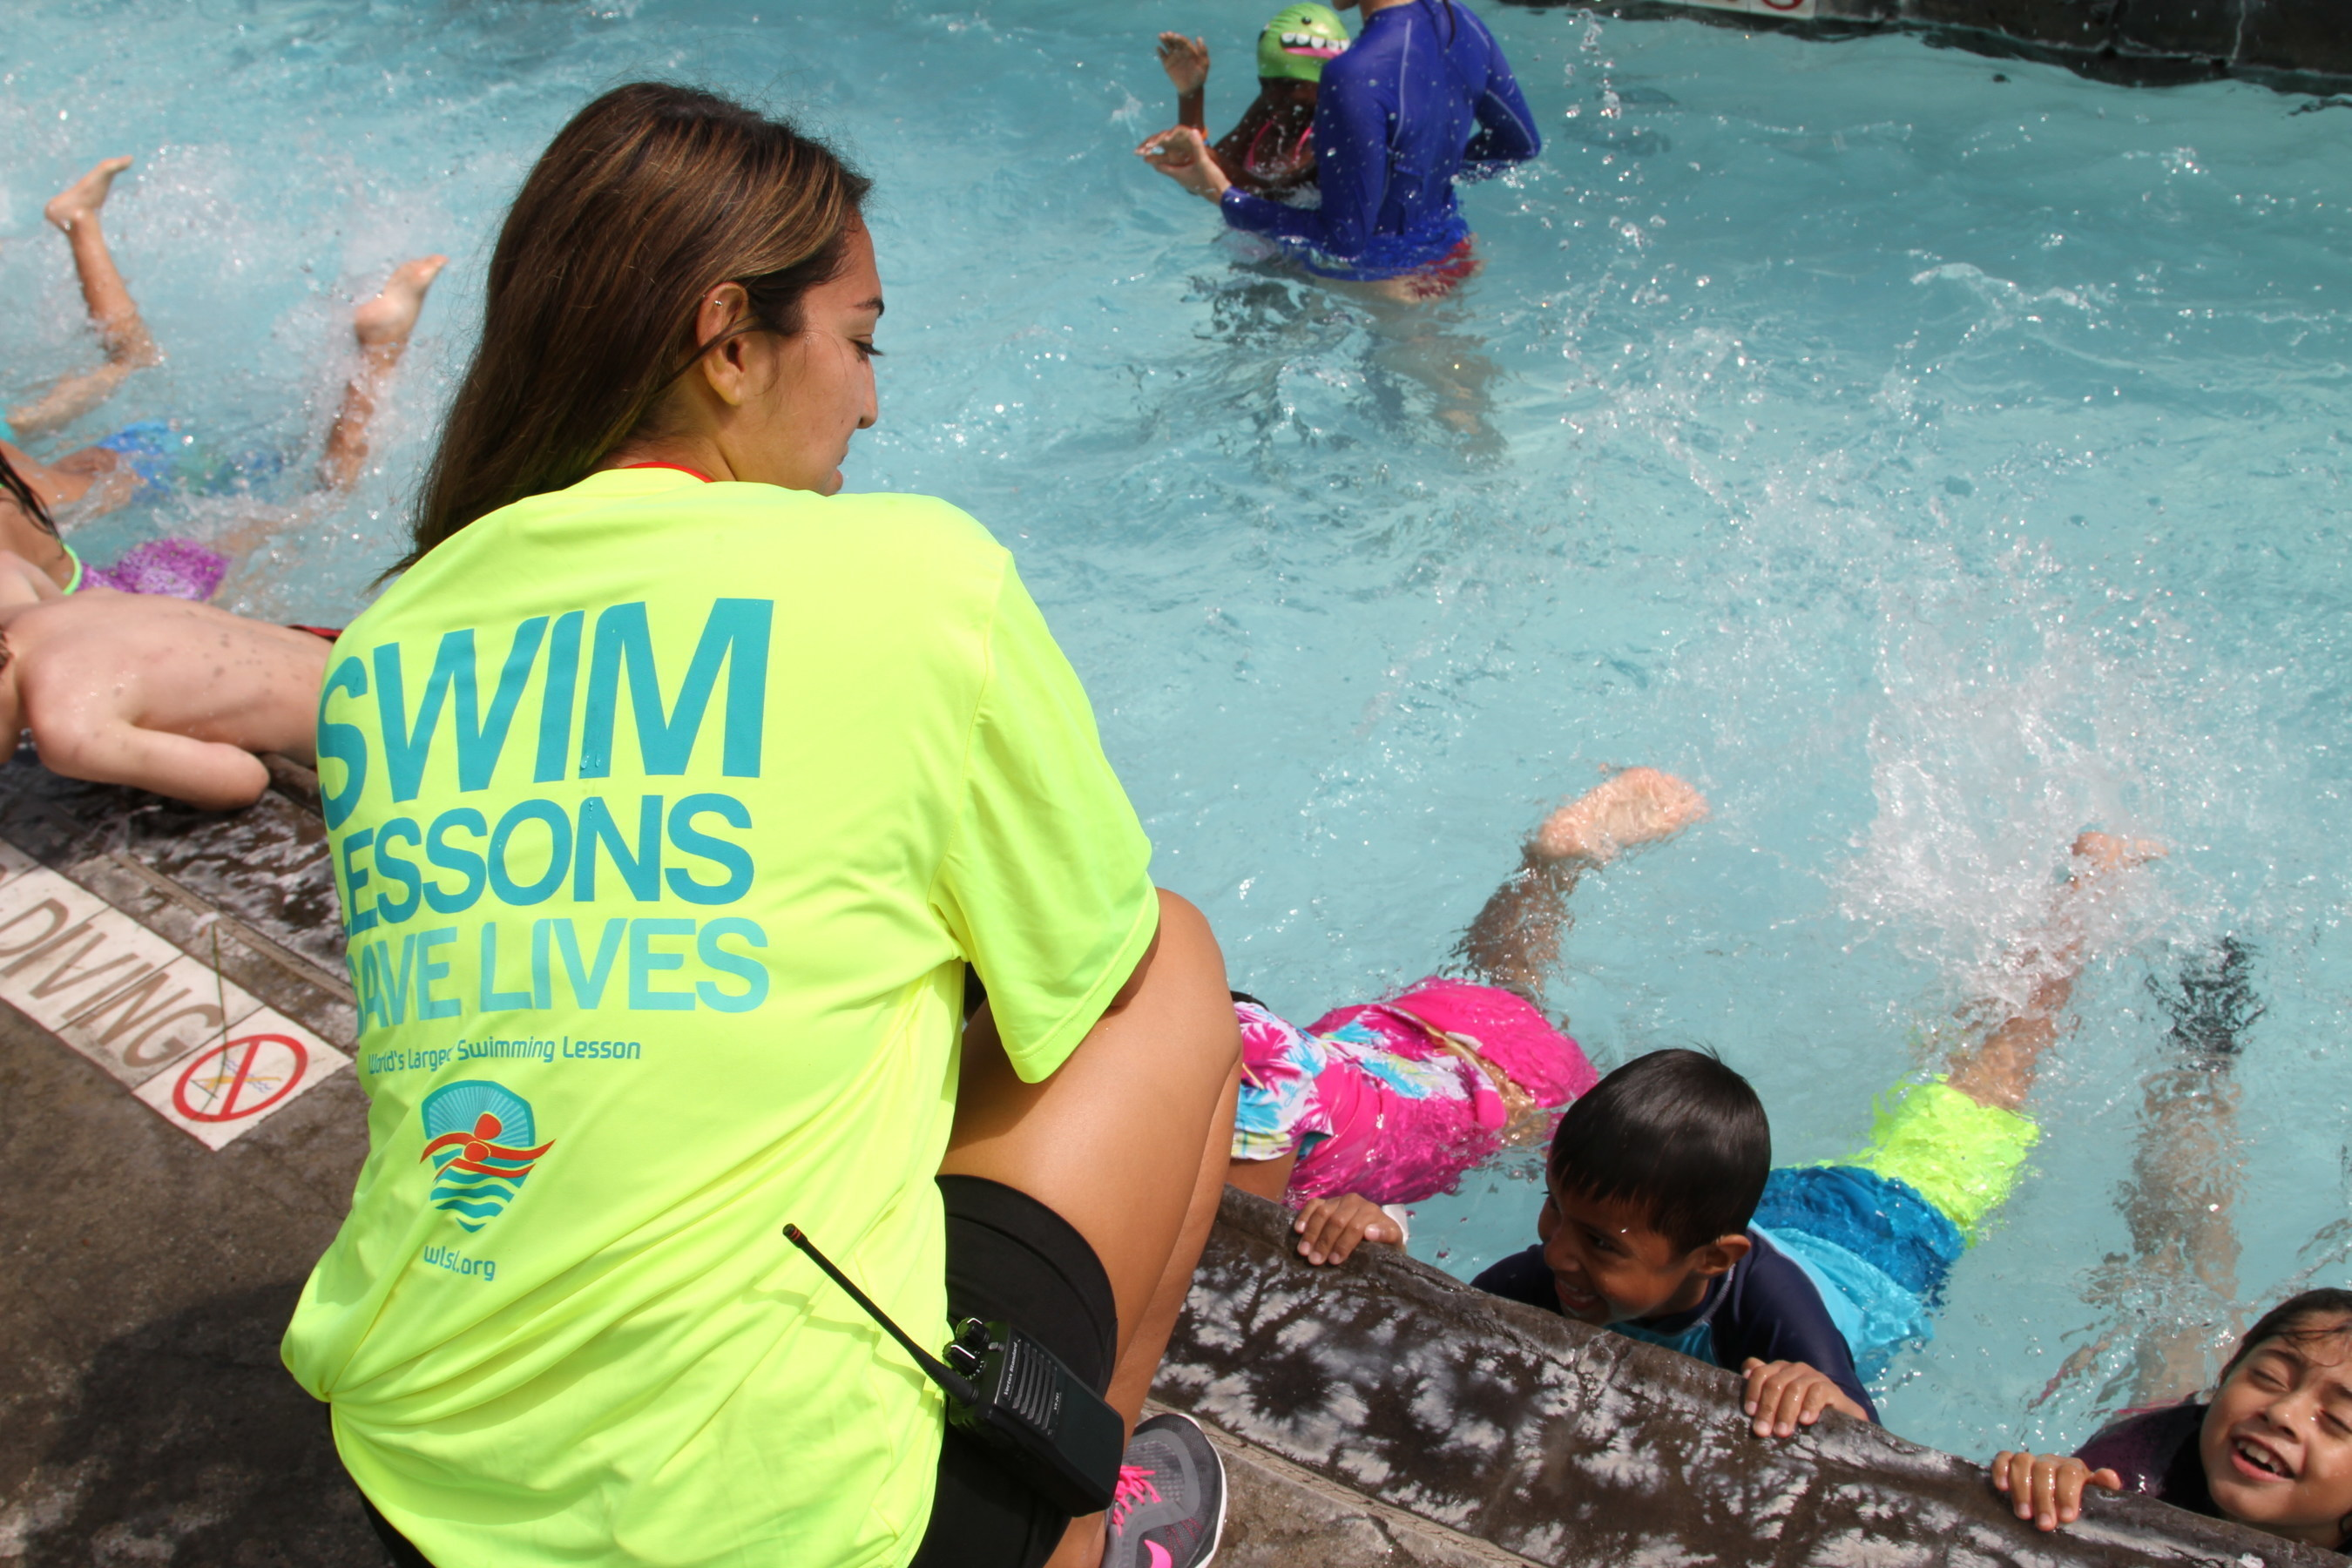 Supervising Lifeguard, Nicole Alvarado instructs swimmers during The 2016 World's Largest Swimming Lesson at Splash La Mirada outside of Los Angeles. More than 45,000 swimmers in 24 countries joined forces to help send the message Swimming Lessons Save Lives to help prevent drowning, the second leading cause of accidental death for kids ages 1-14. More drowning and near-drowning accidents take place in June than any other month of the year.